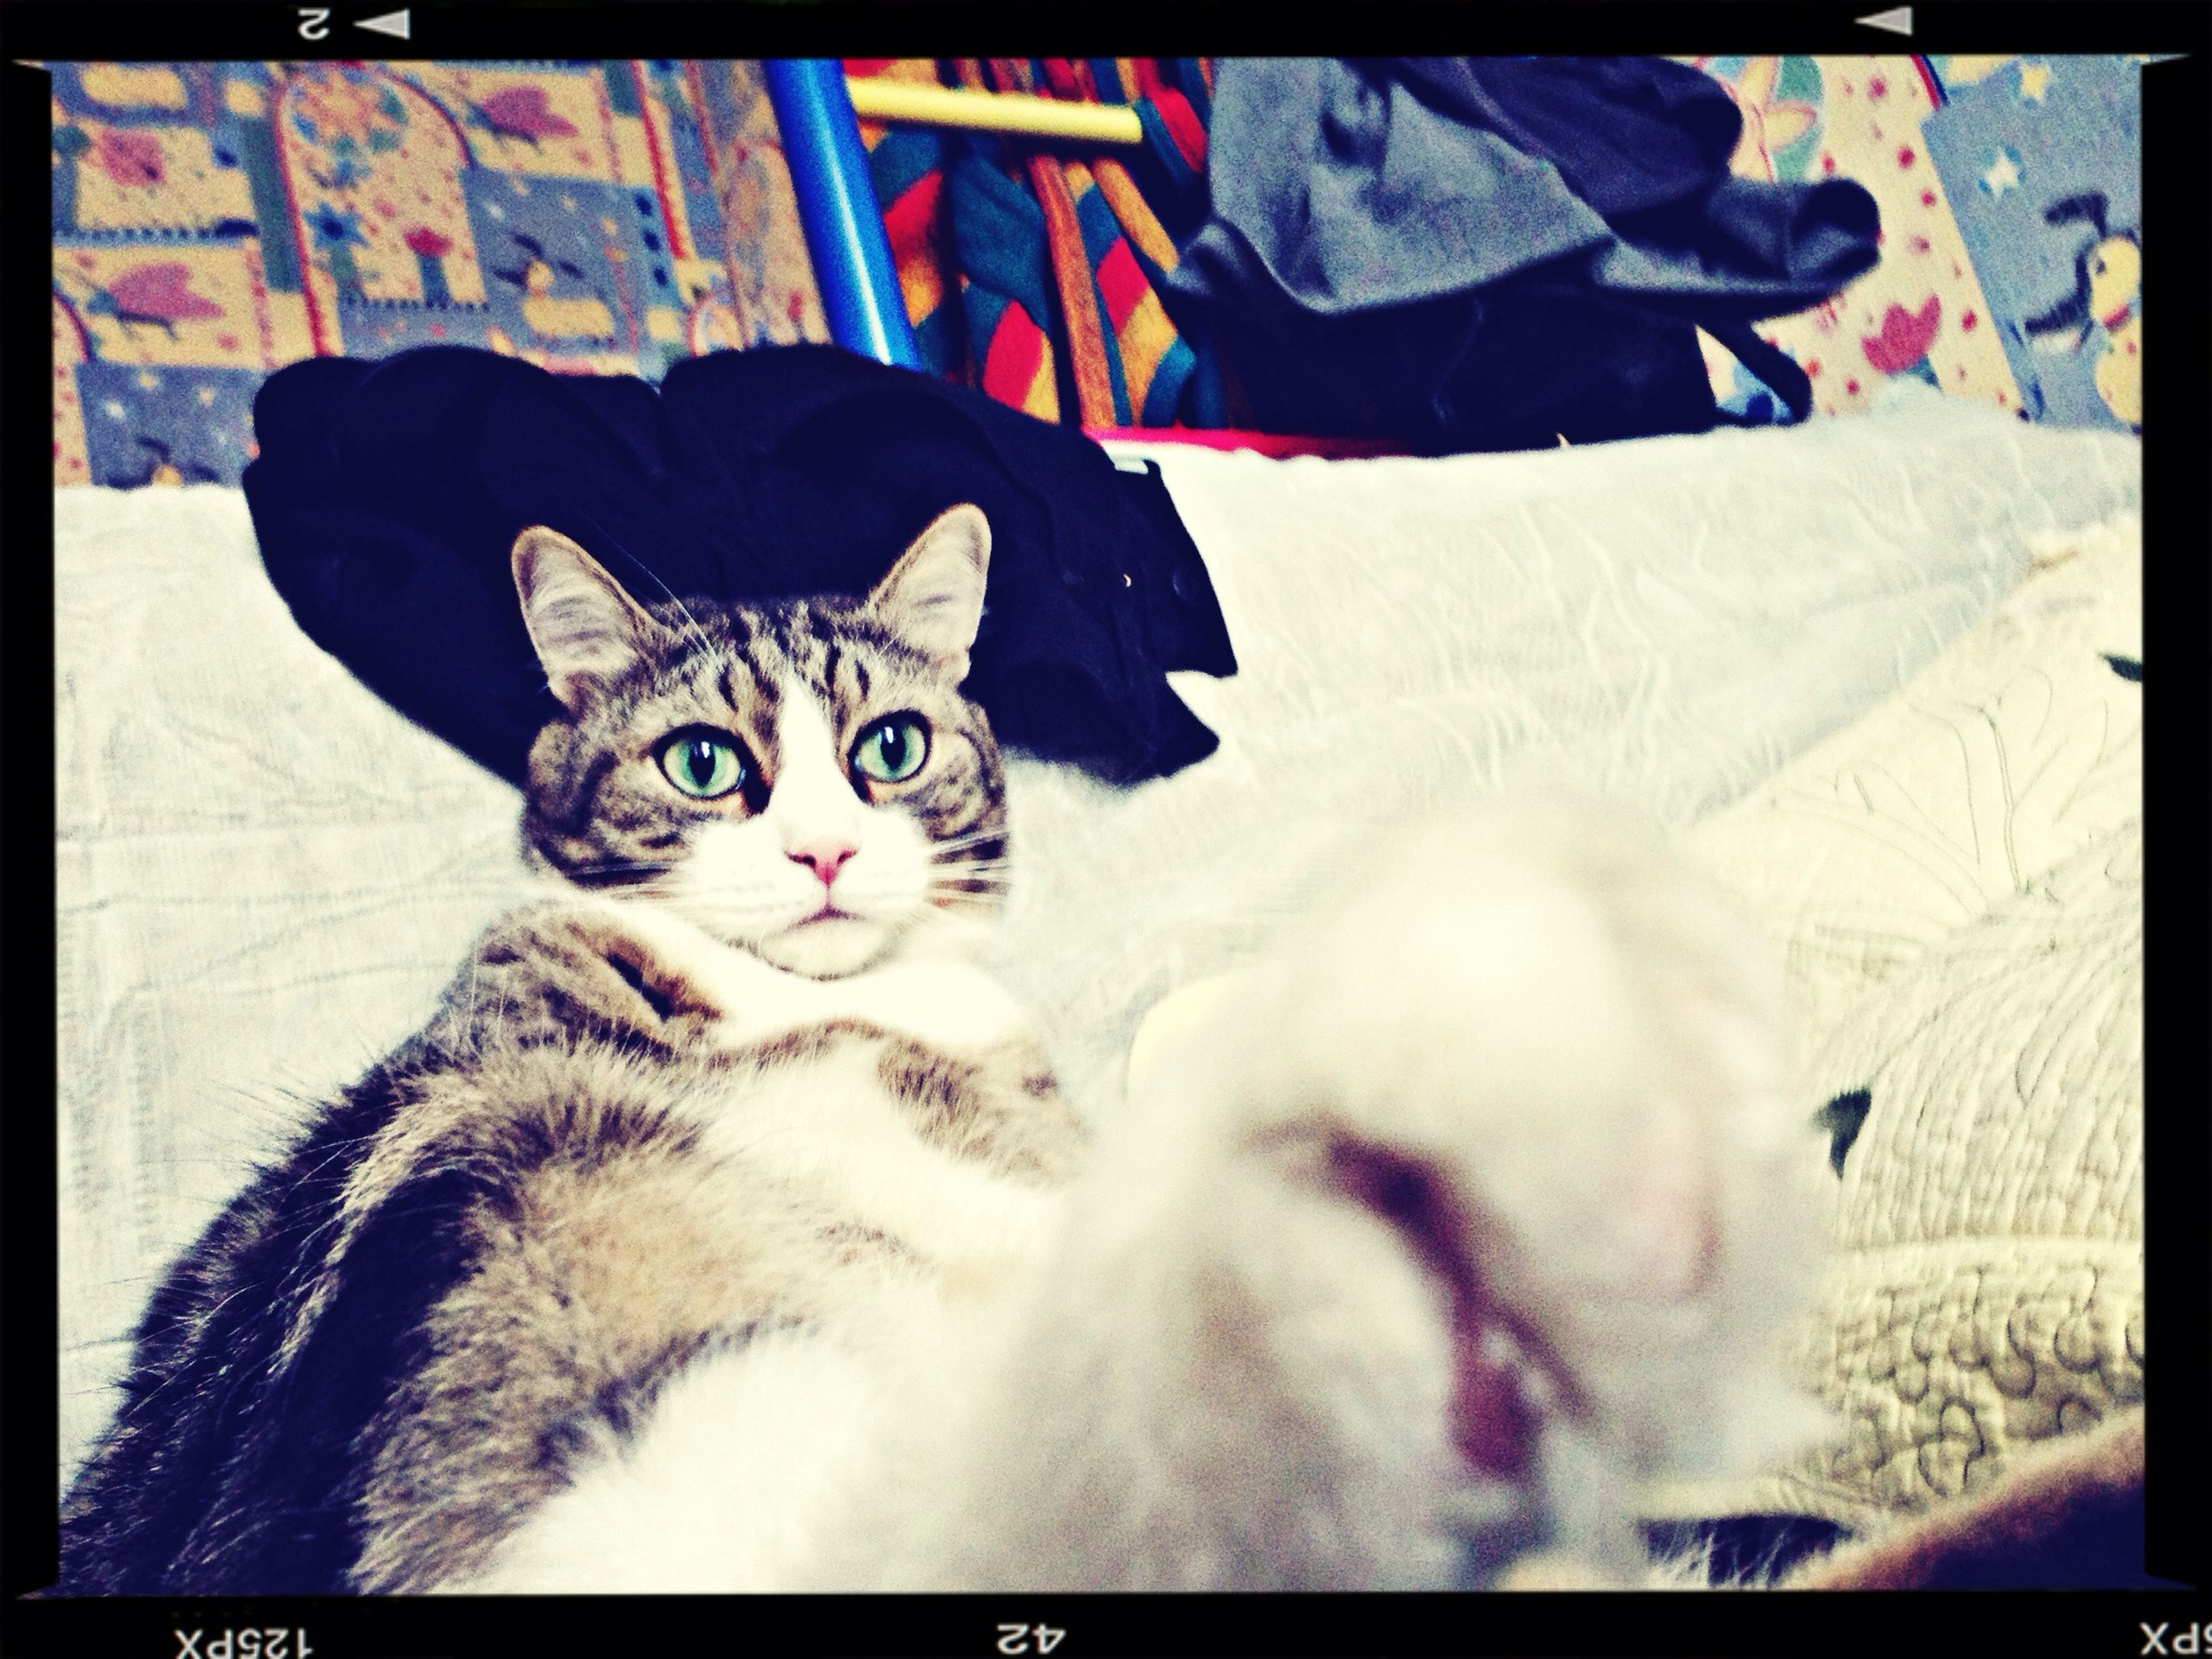 transfer print, pets, domestic animals, auto post production filter, indoors, one animal, animal themes, looking at camera, portrait, mammal, domestic cat, cat, home interior, front view, feline, sitting, relaxation, close-up, dog, bed